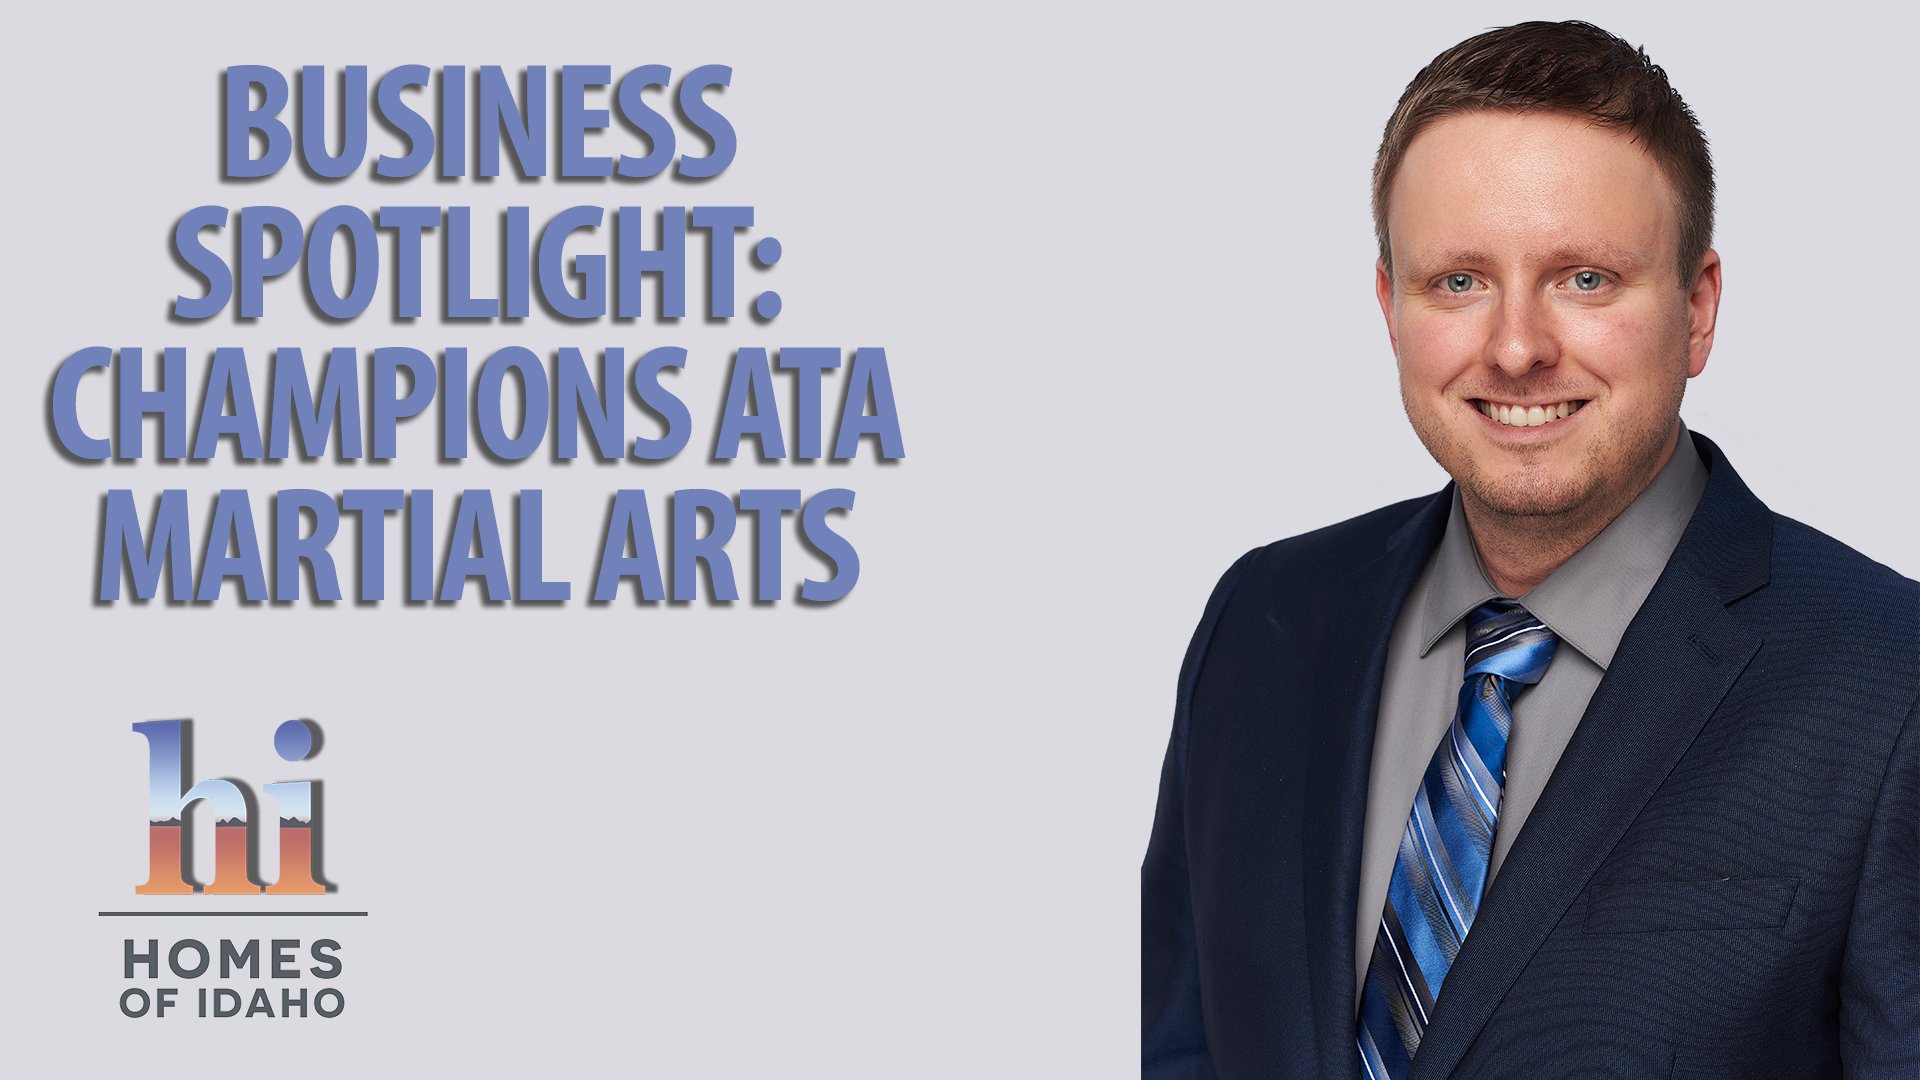 Master Travis Dillow Talks About His Business: Champions ATA Martial Arts